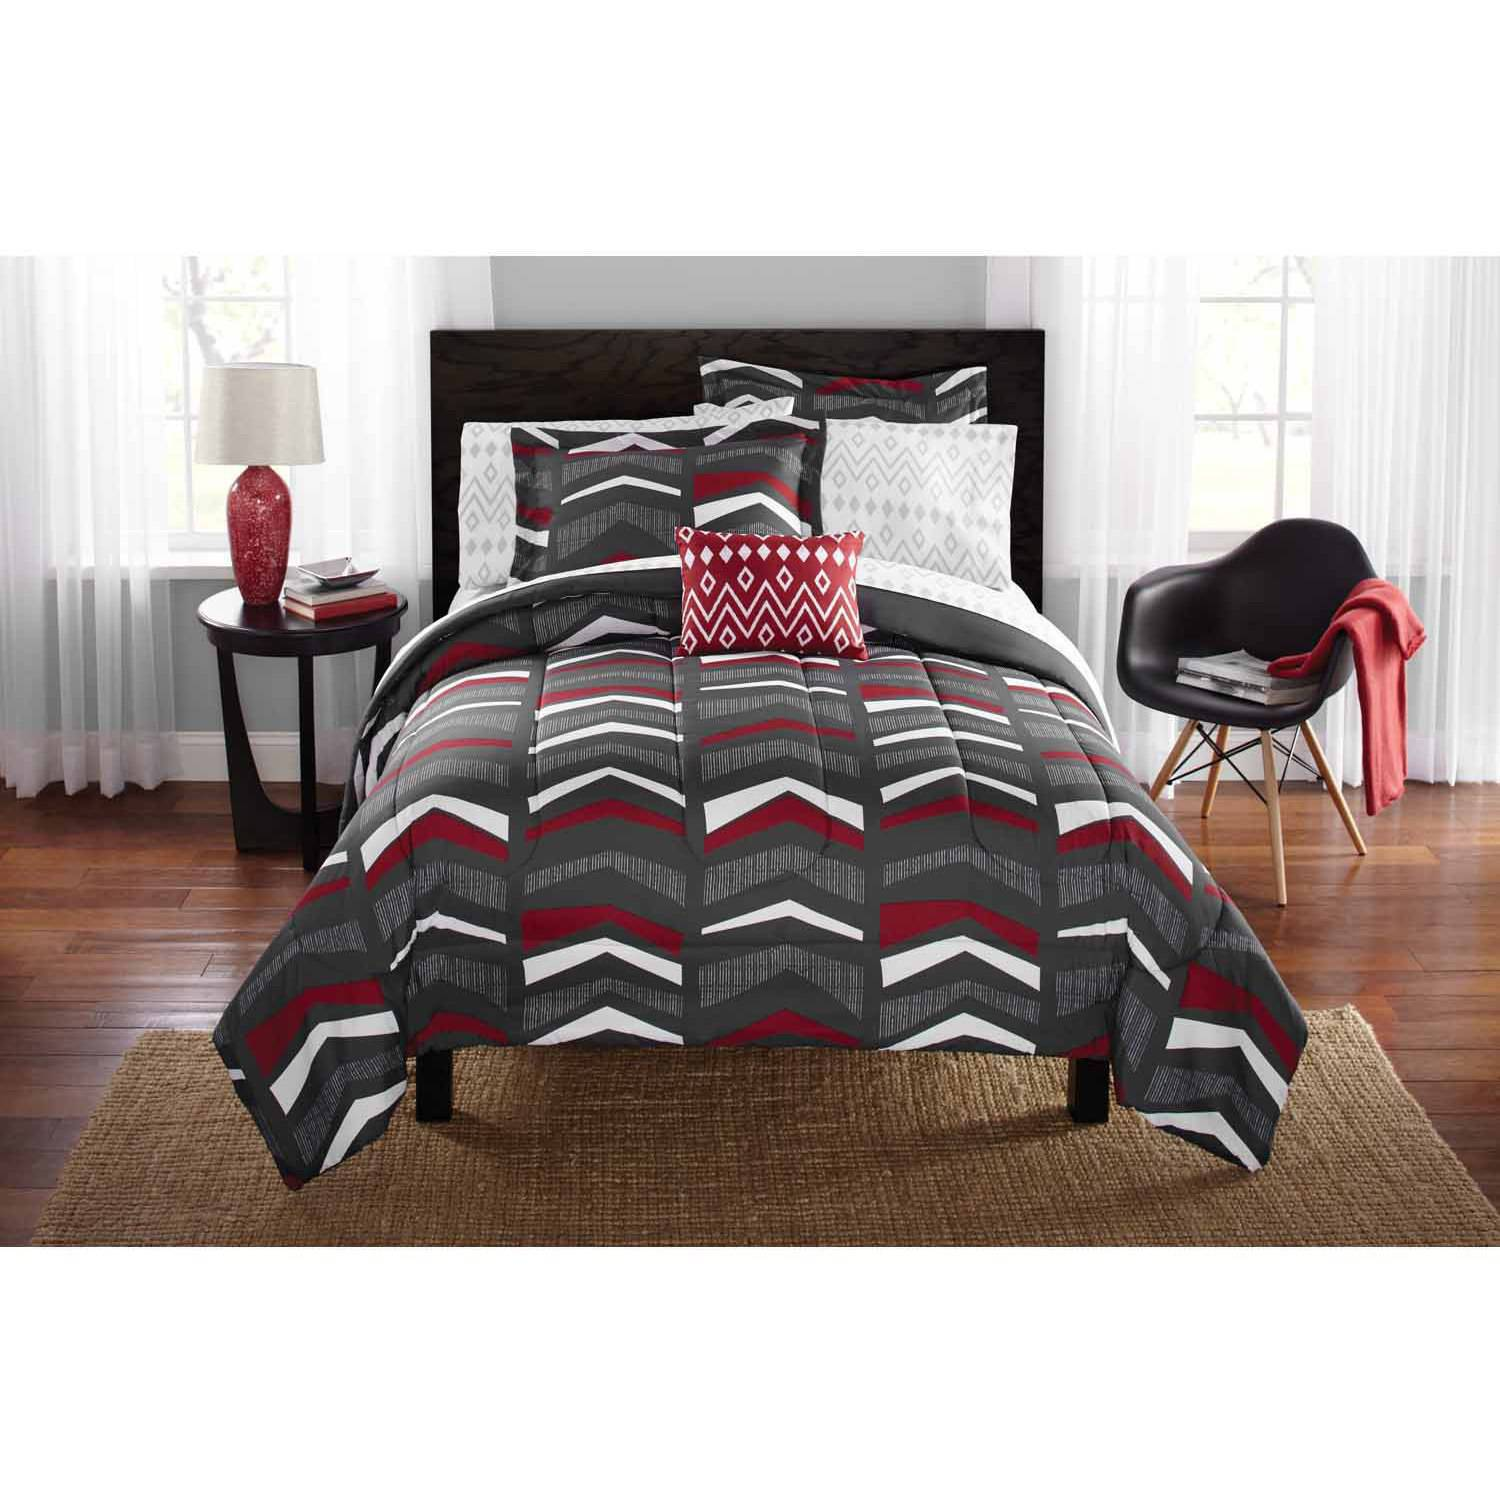 online for bedding set your cotton princess beyond bedroom sets new bath design grey duvet shopping pillowcase and ruffle full bed buy cover size comforter compare prices king dark on washed